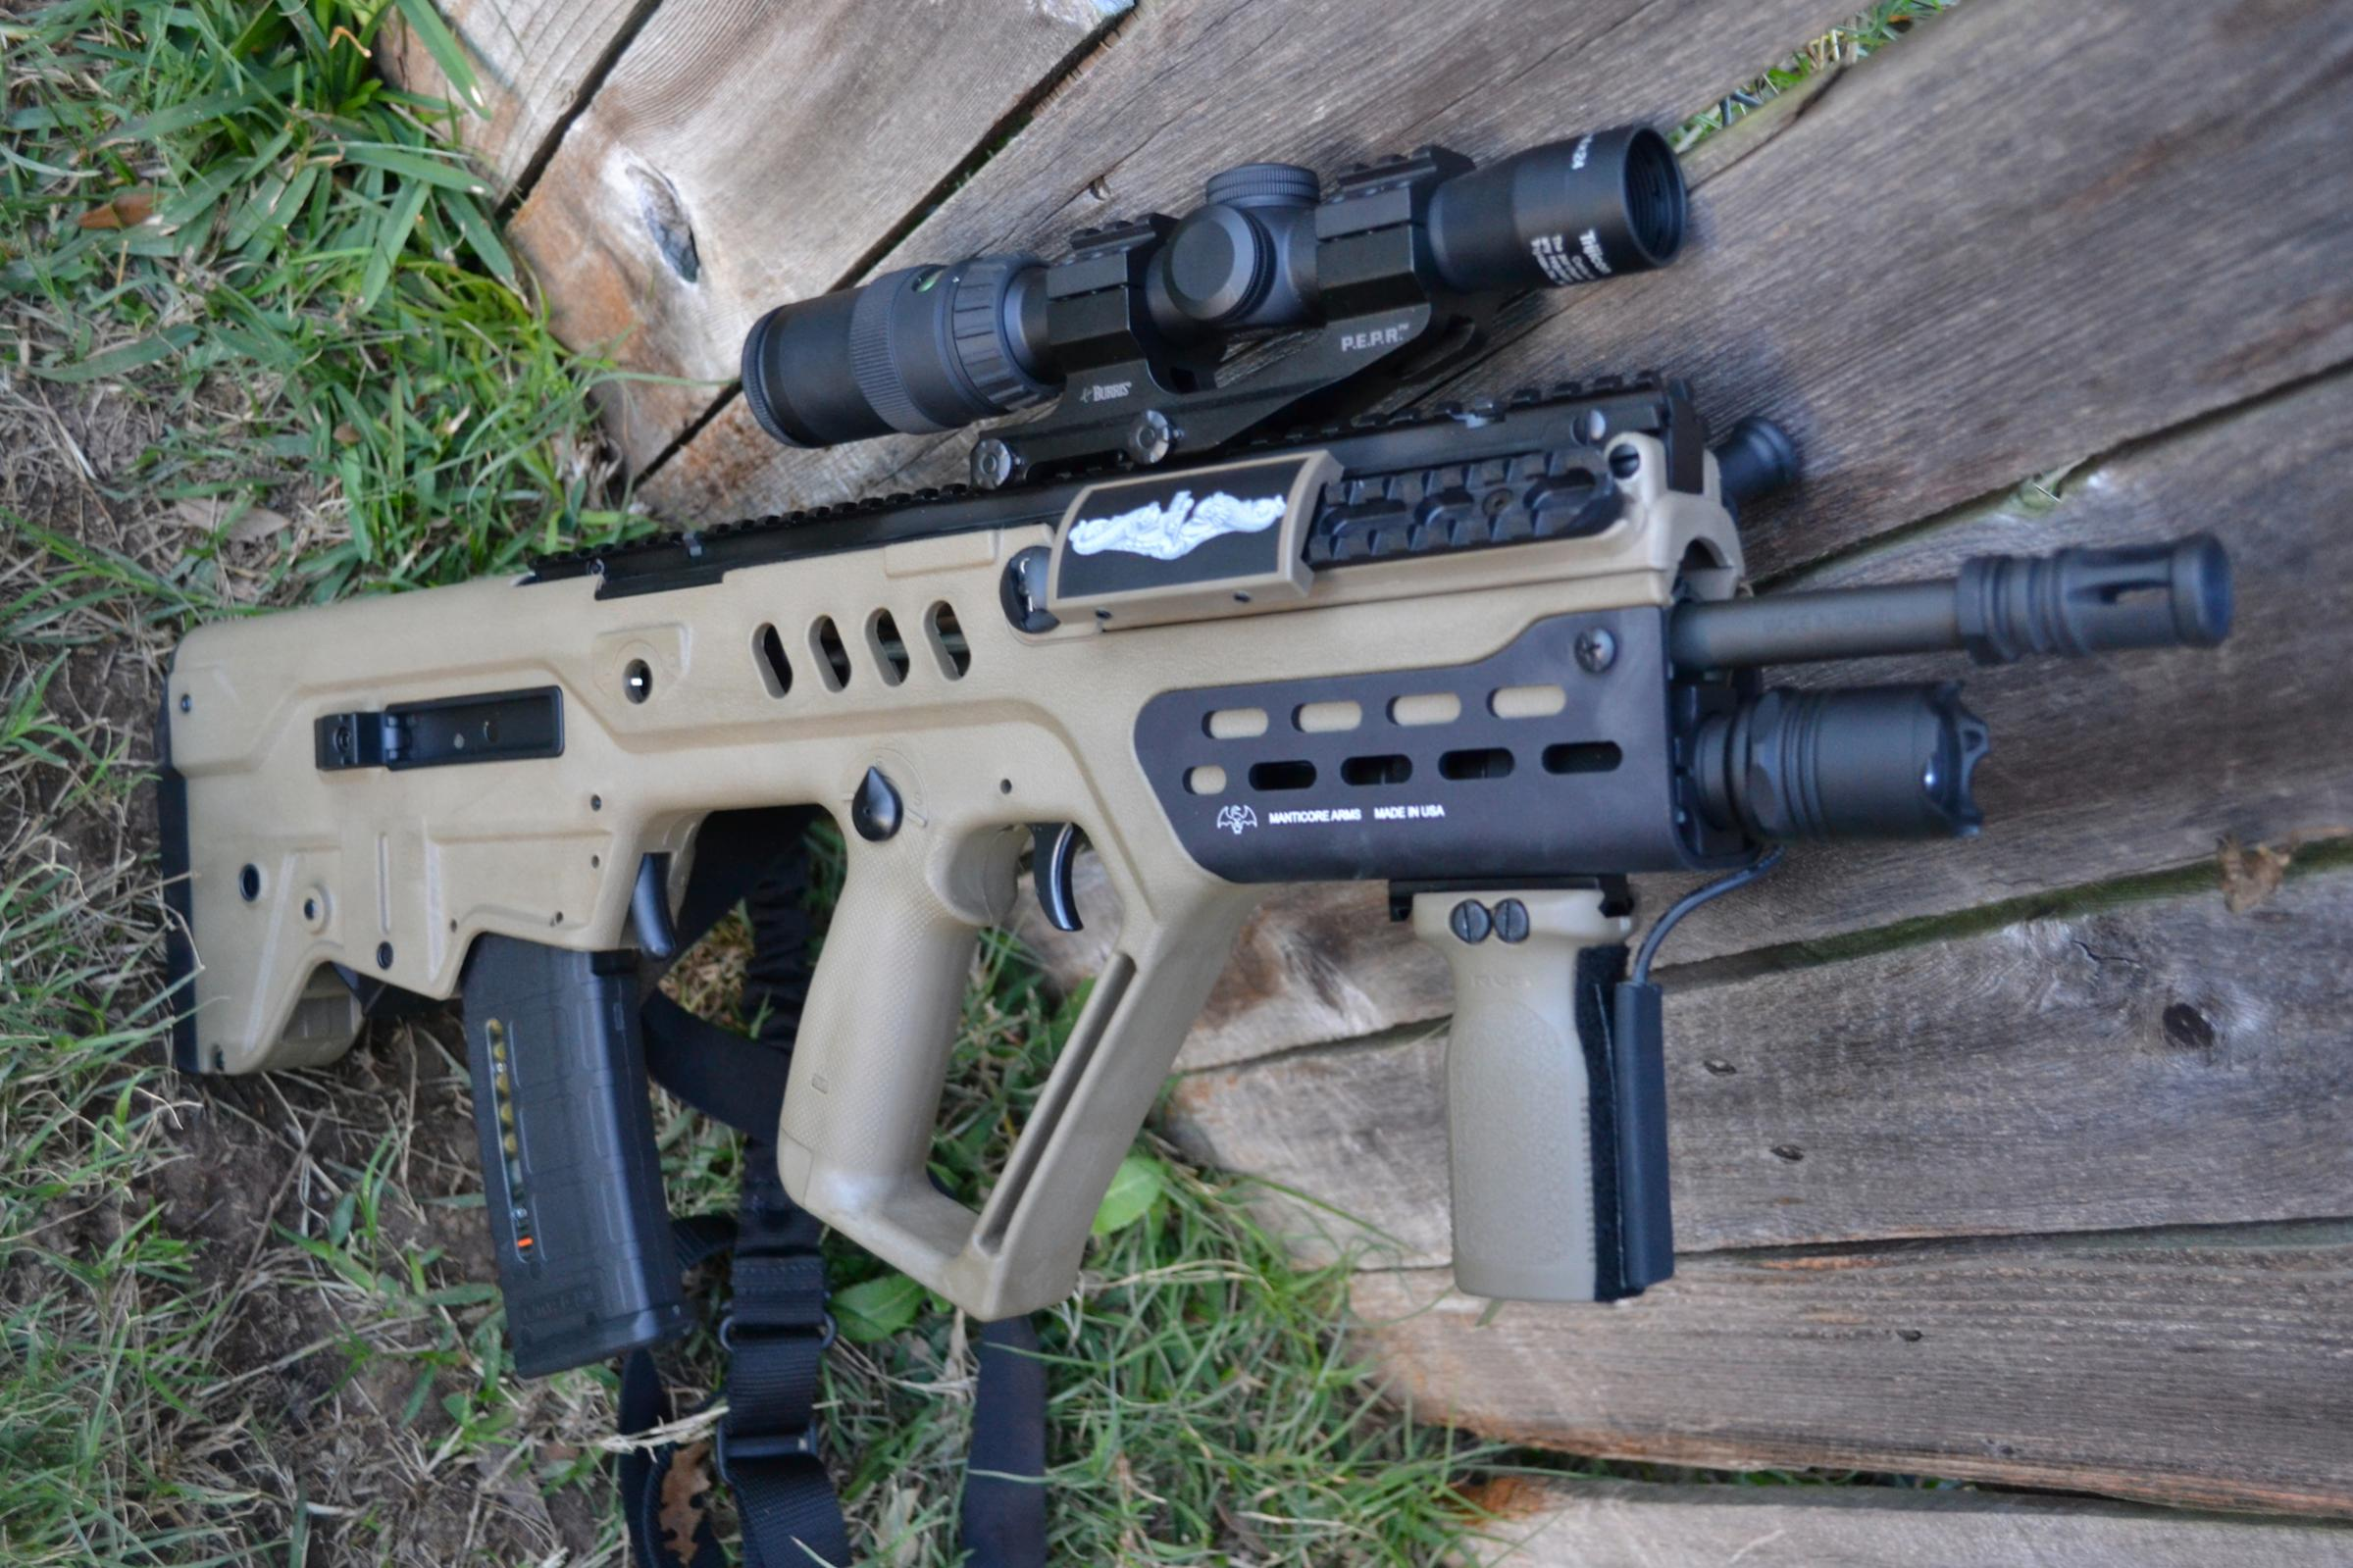 Manticore Arms ArcLight rail on the Tavor...Merry christmas to me!-dsc_0005-copy.jpg